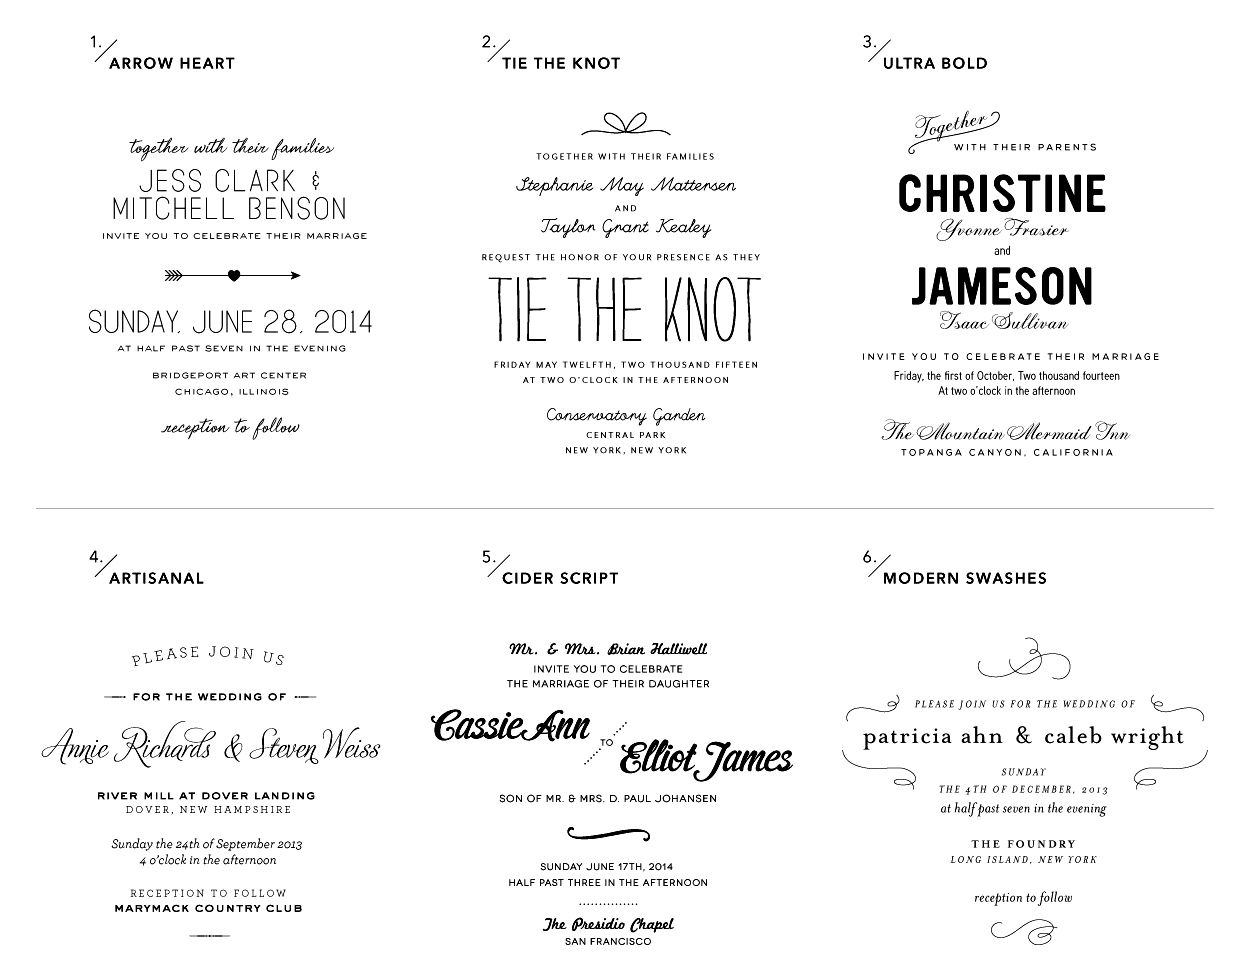 Whimsical wedding invitation wording view all 6 type styles whimsical wedding invitation wording view all 6 type styles stopboris